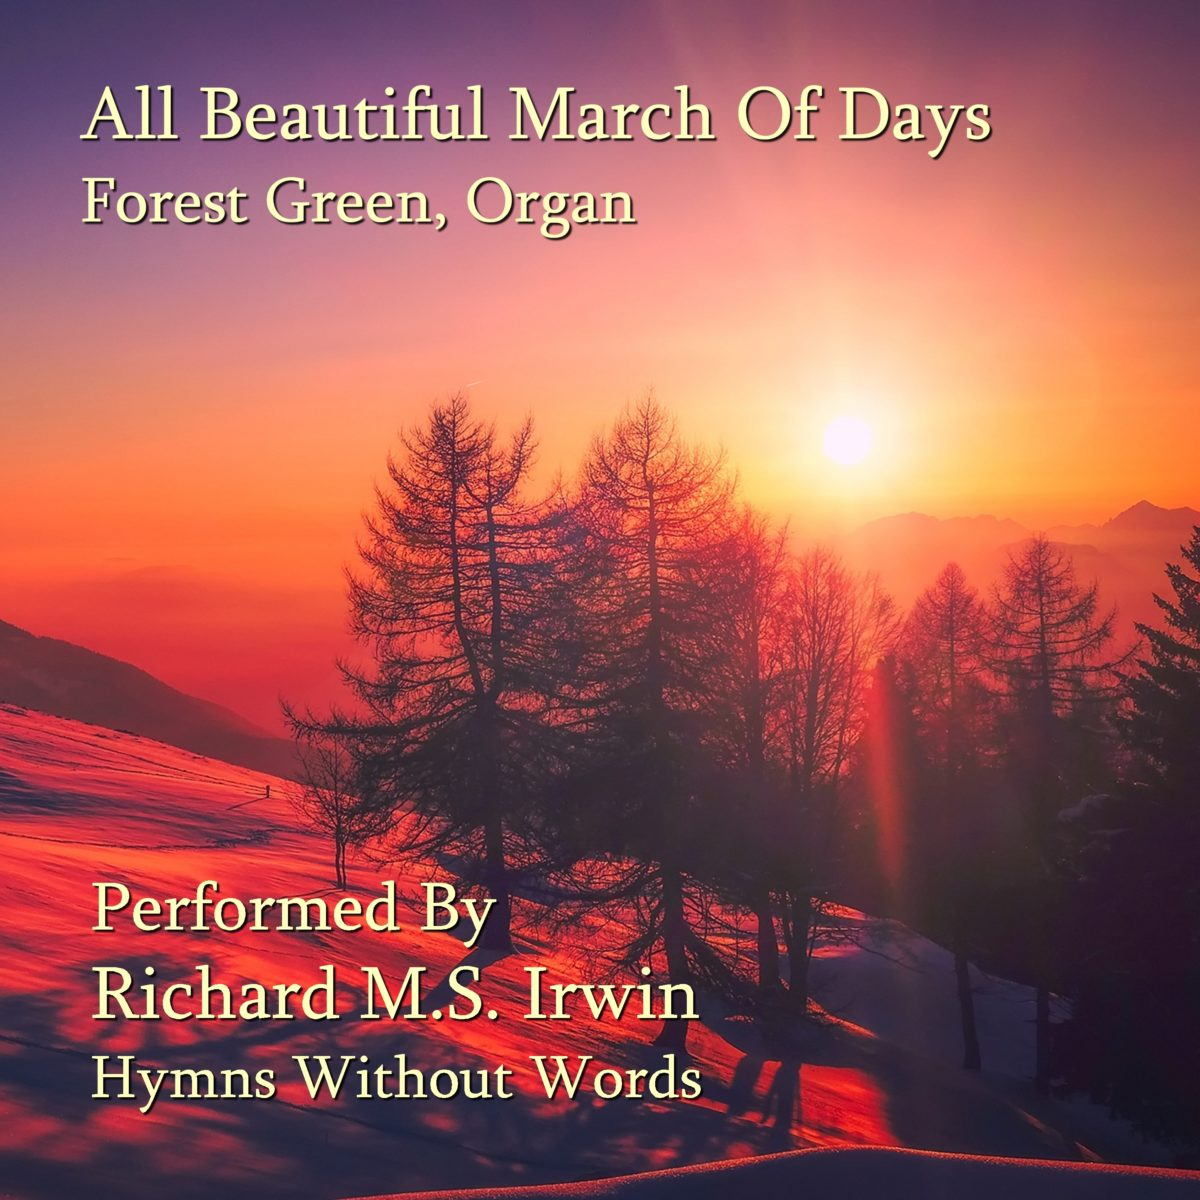 All Beautiful The March Of Days (Forest Green – 3 Verses) – Organ